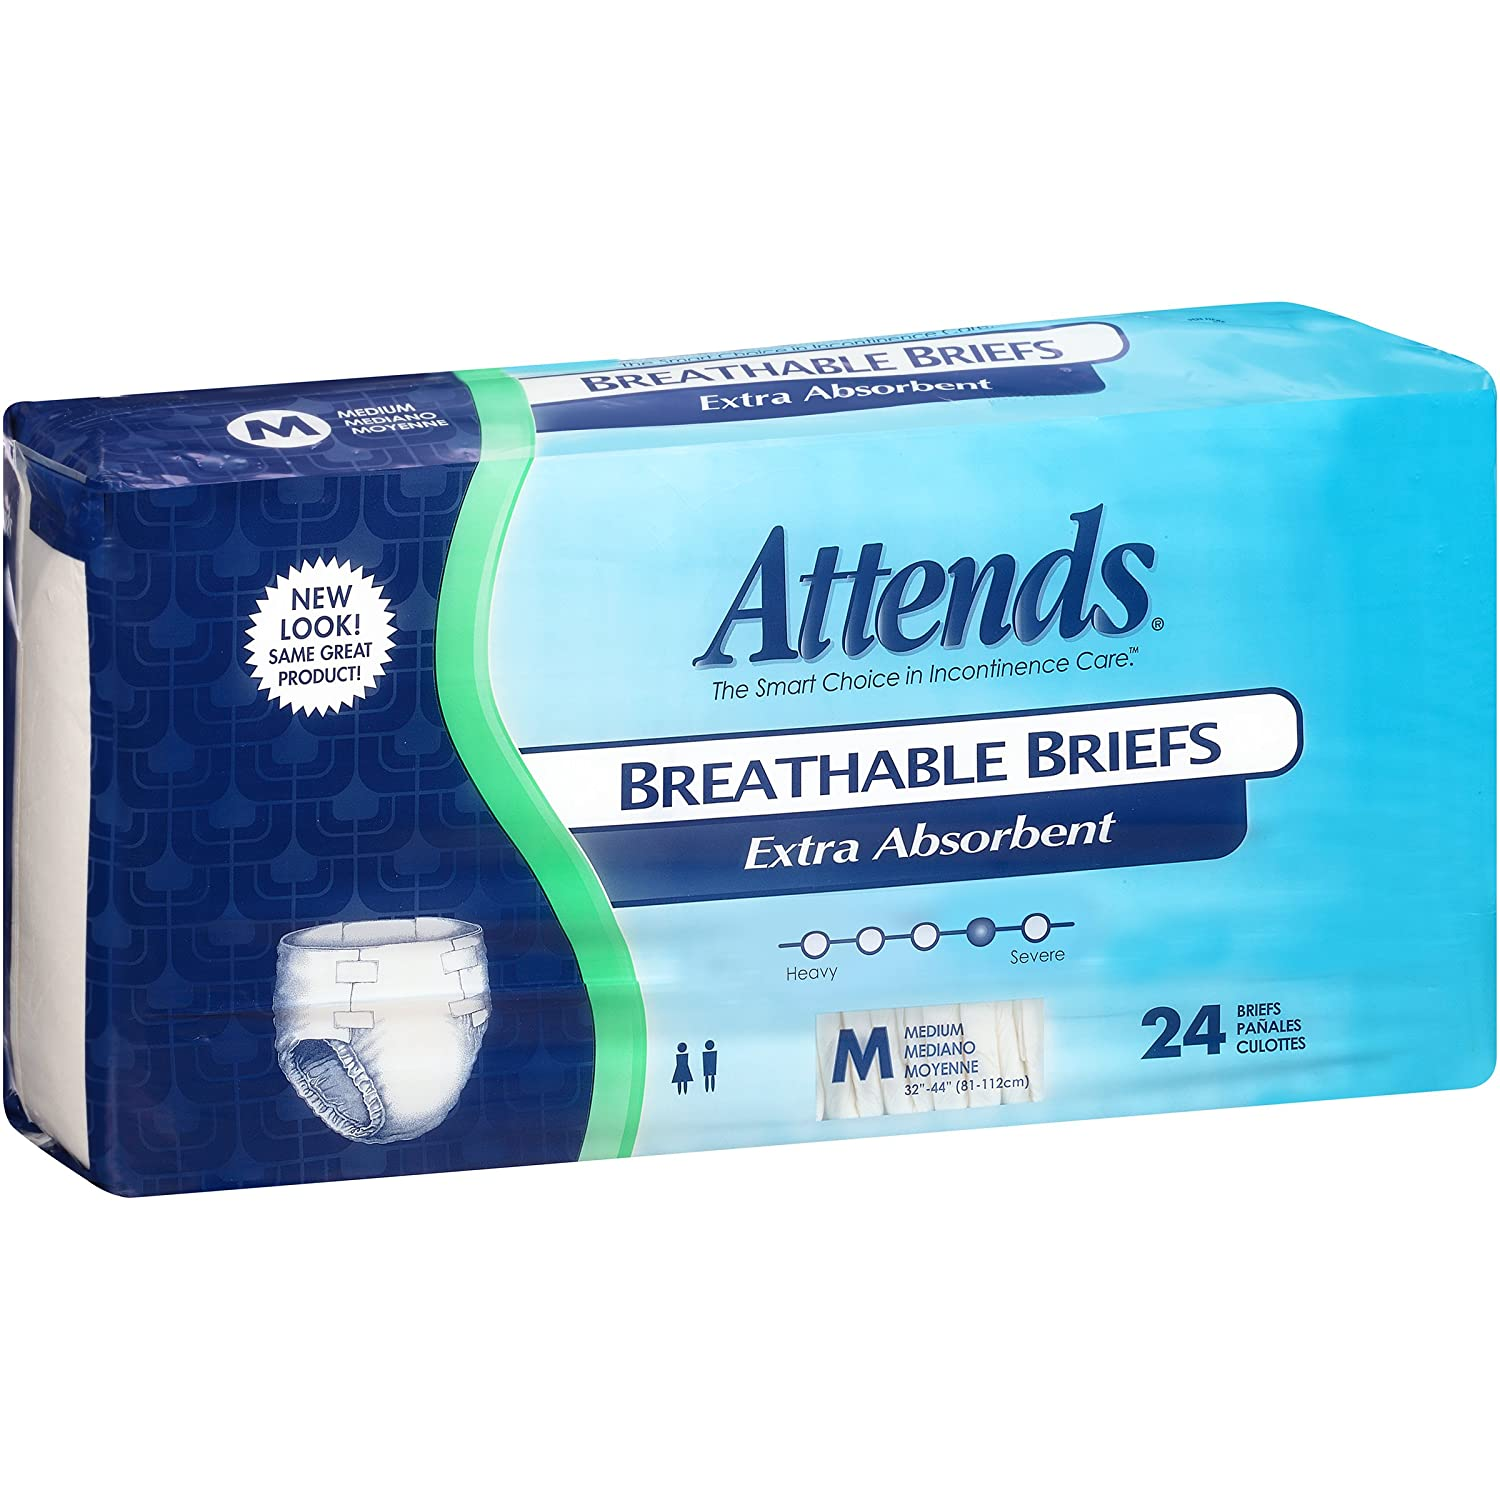 Amazon.com: Attends Breathable Briefs with Odor Shield for Adult Incontinence Care, Medium, Unisex, 24 Count (Pack of 4): Health & Personal Care